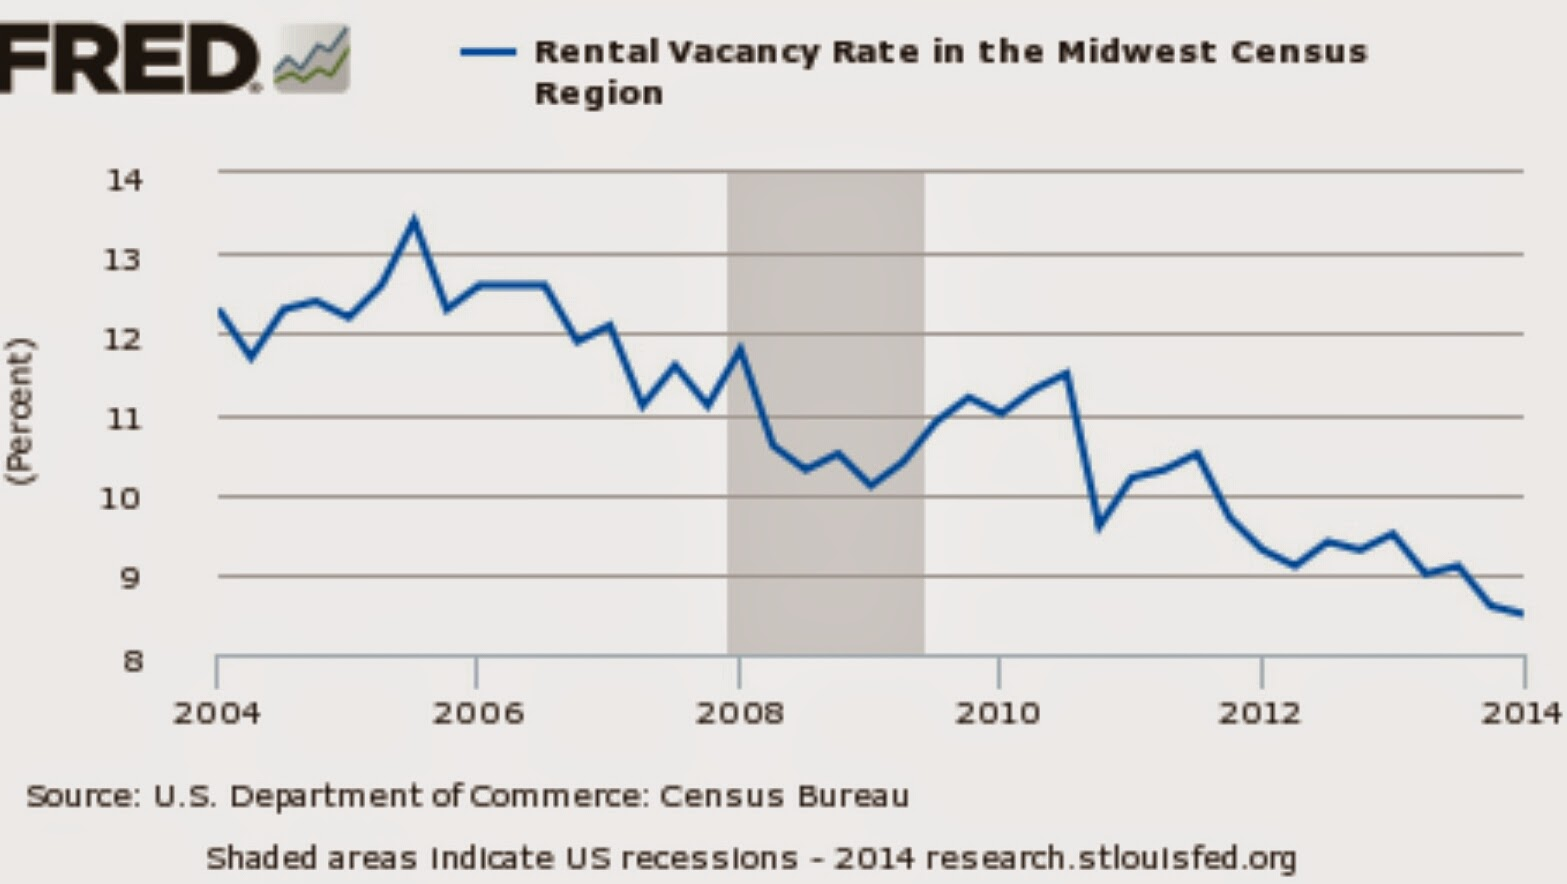 Rental vacancies in the MidWest